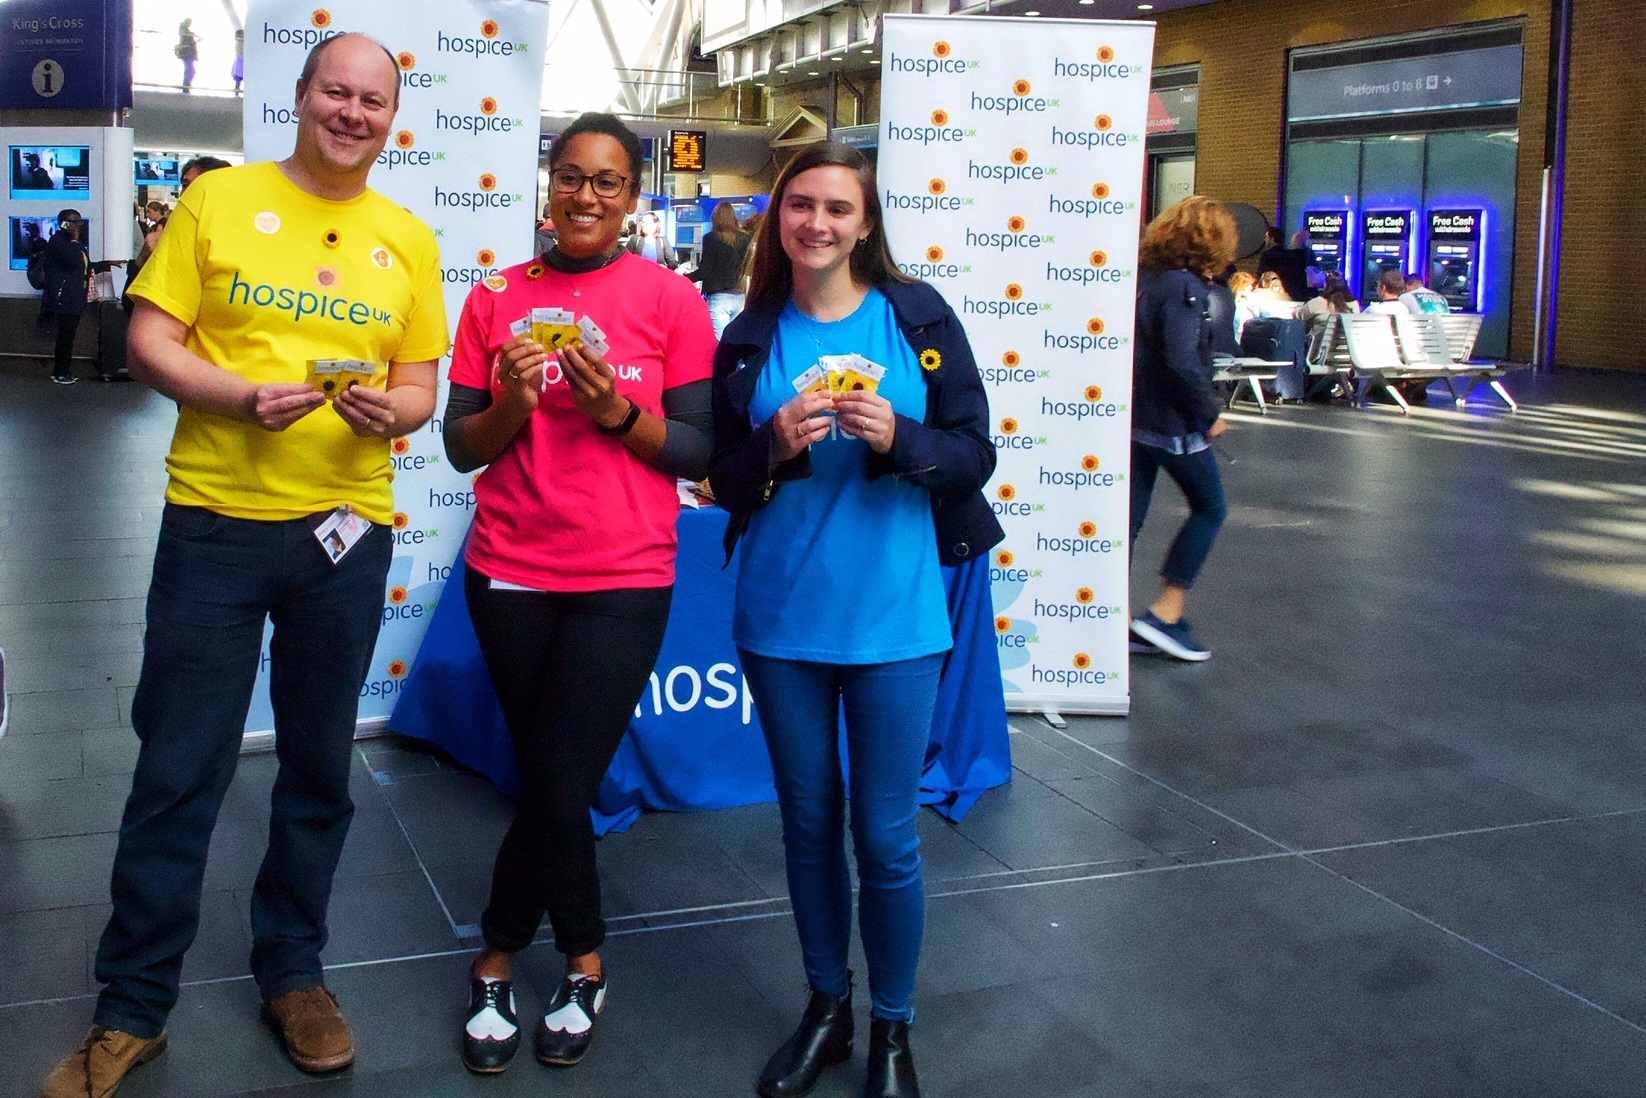 Taking Hospice Care Week to King's Cross station